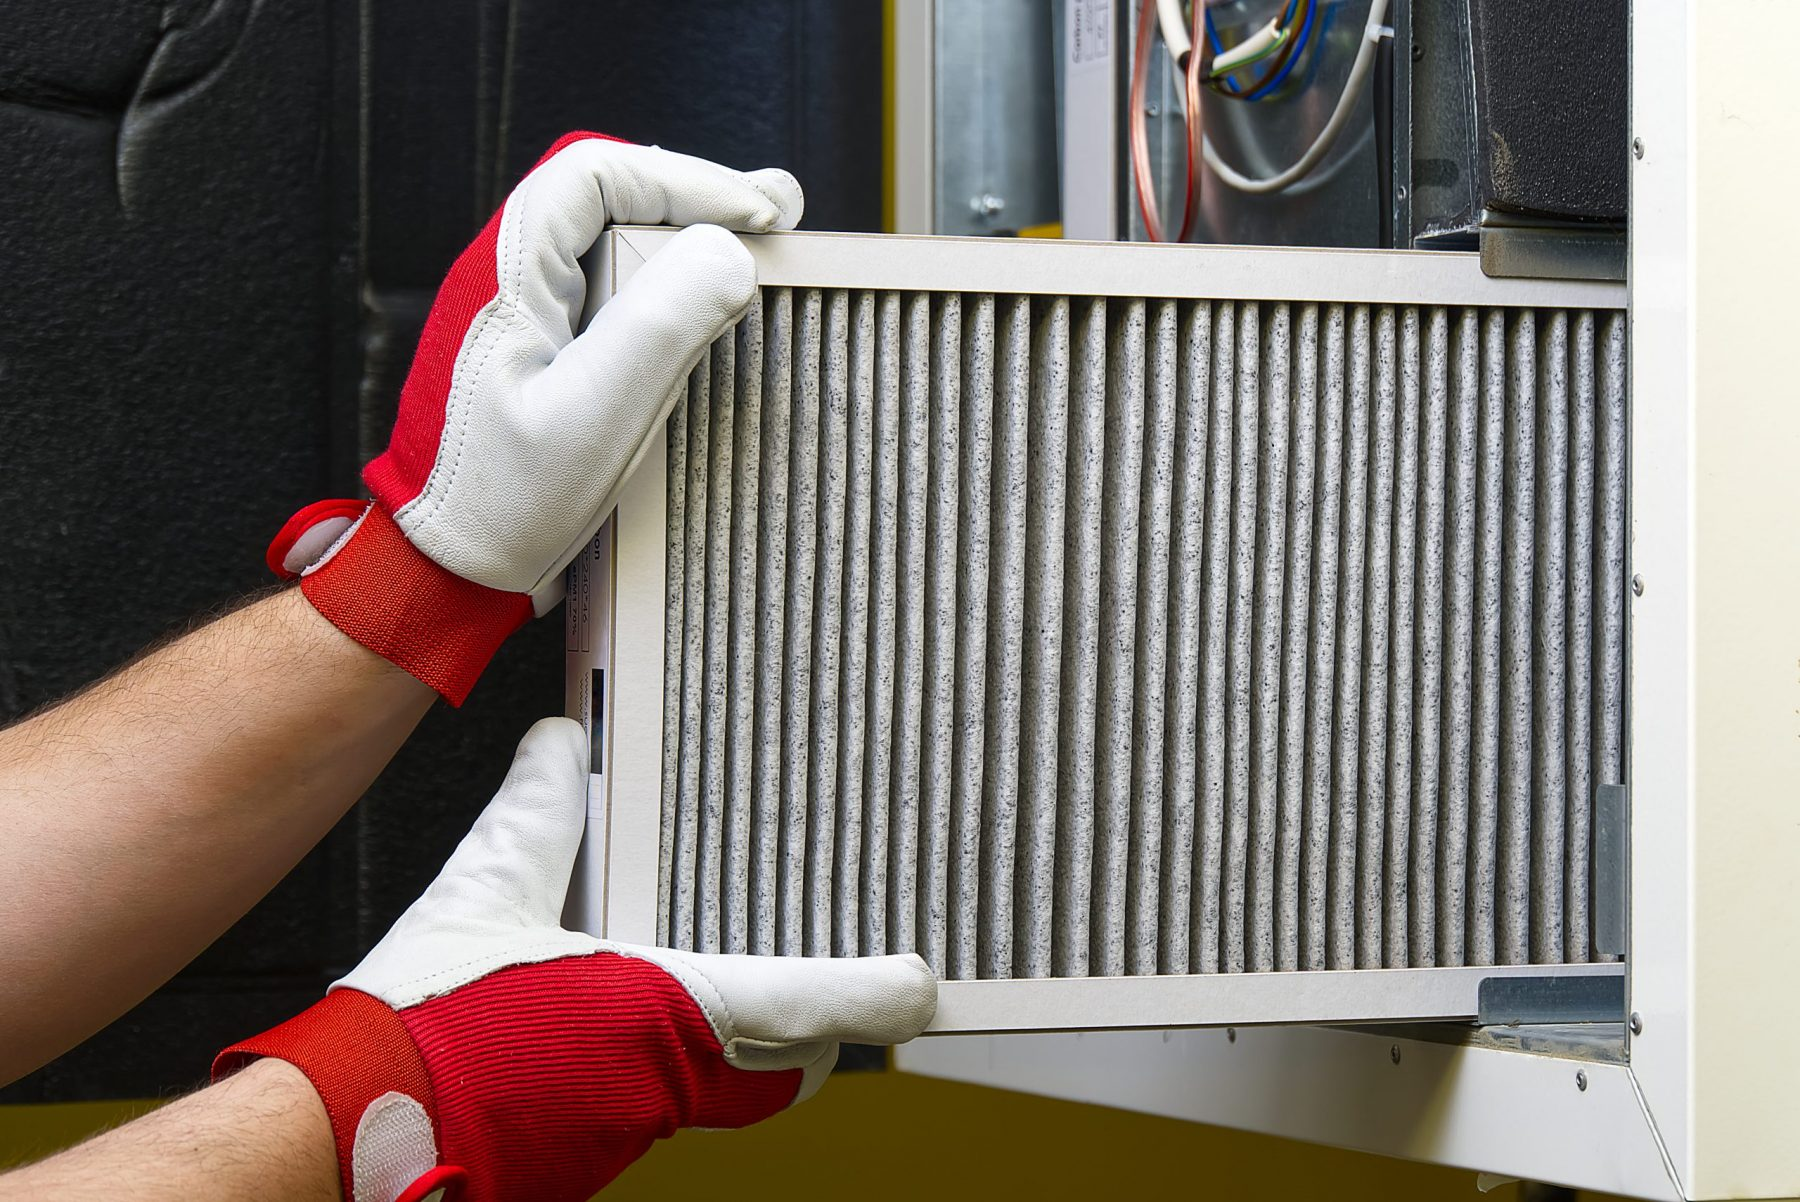 Replacing the filter in the central ventilation system.